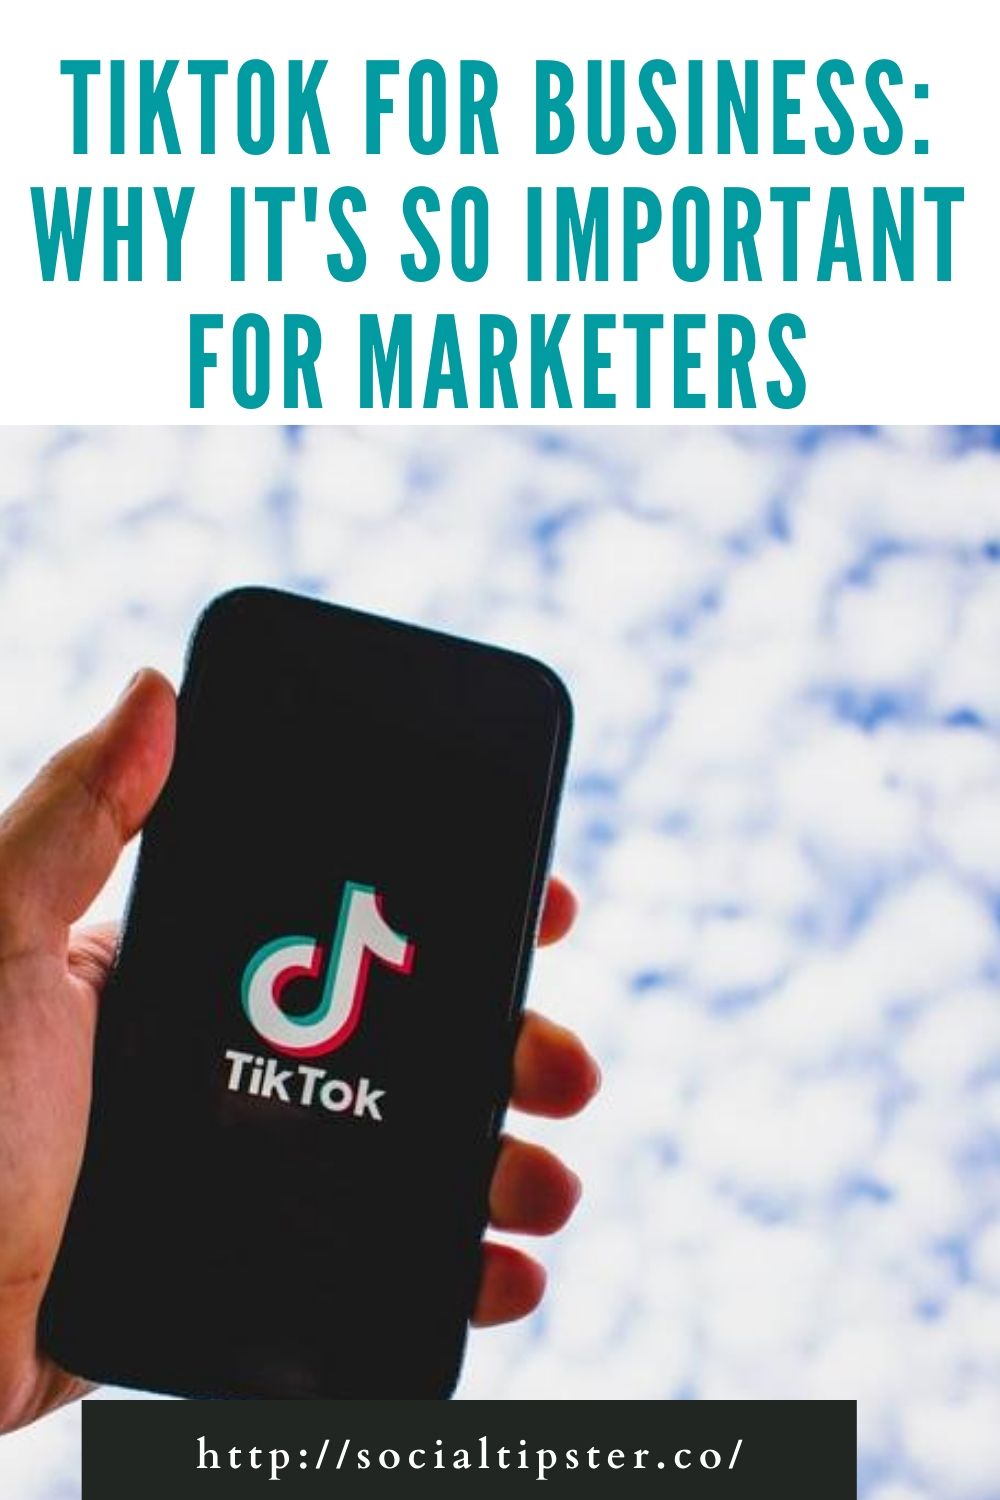 TikTok for Business Why it's so important for marketers